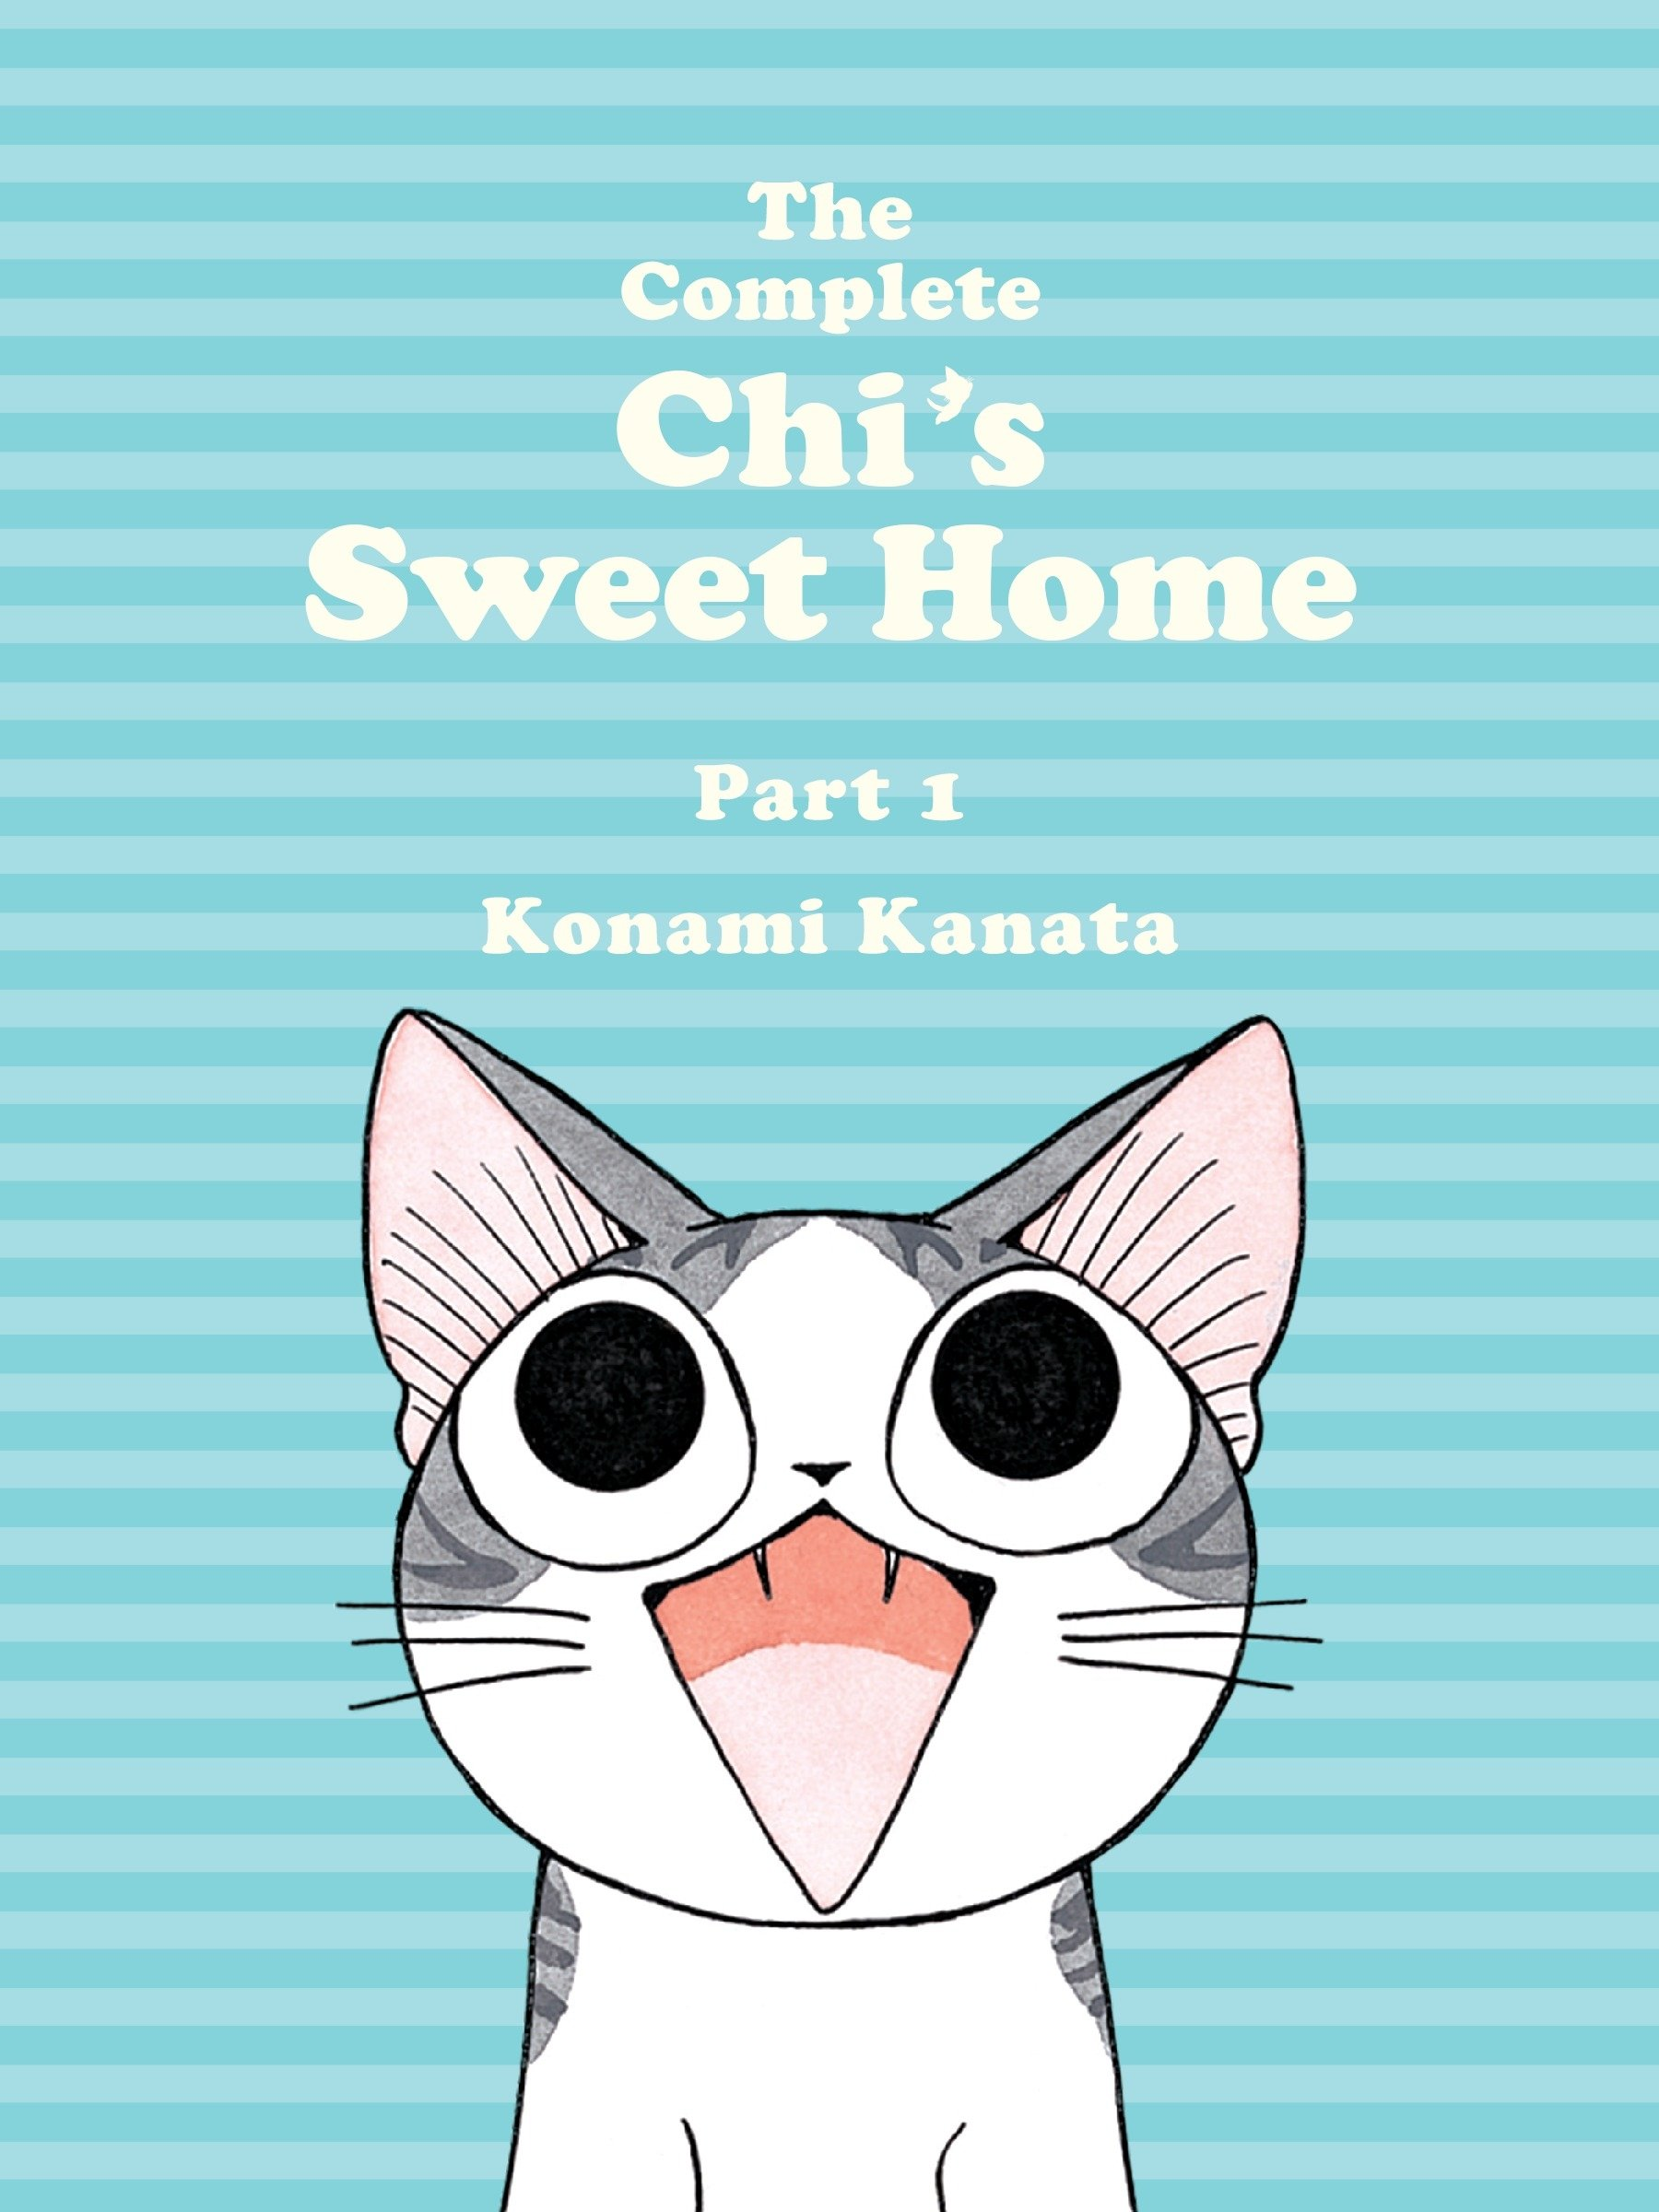 Chi's Sweet Home by Konami Kanata